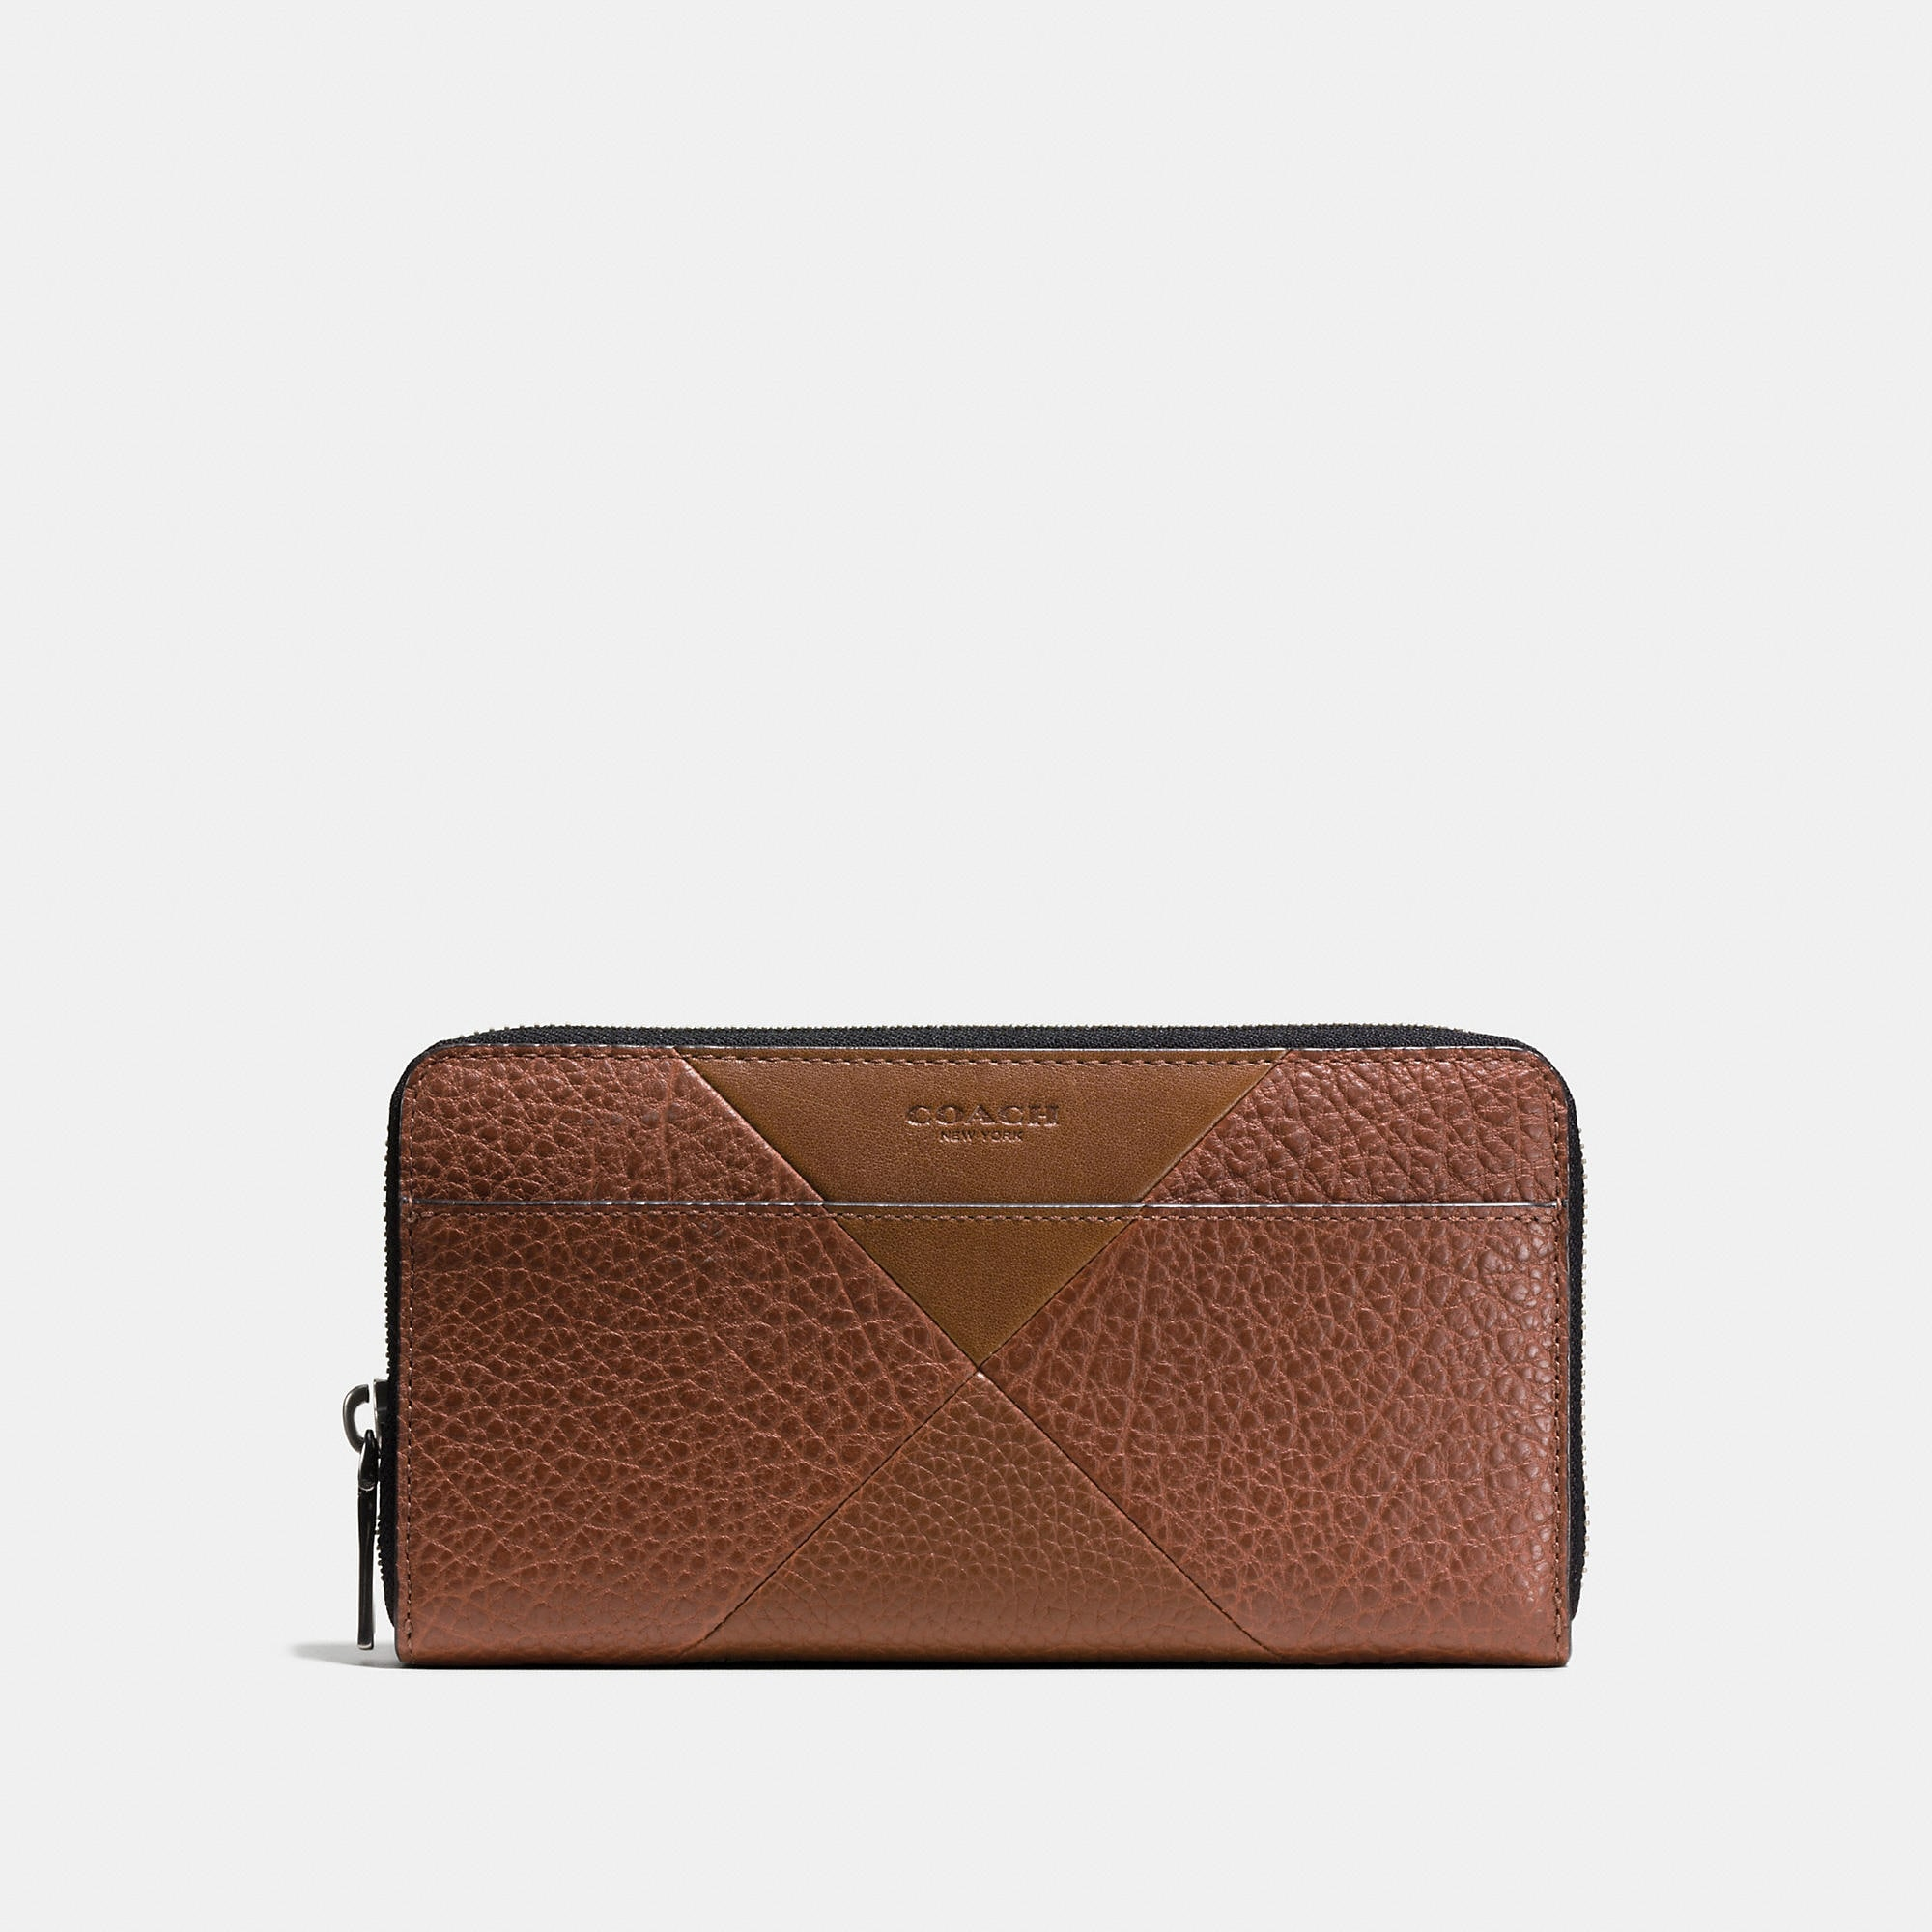 Coach Accordion Wallet In Patchwork Leather